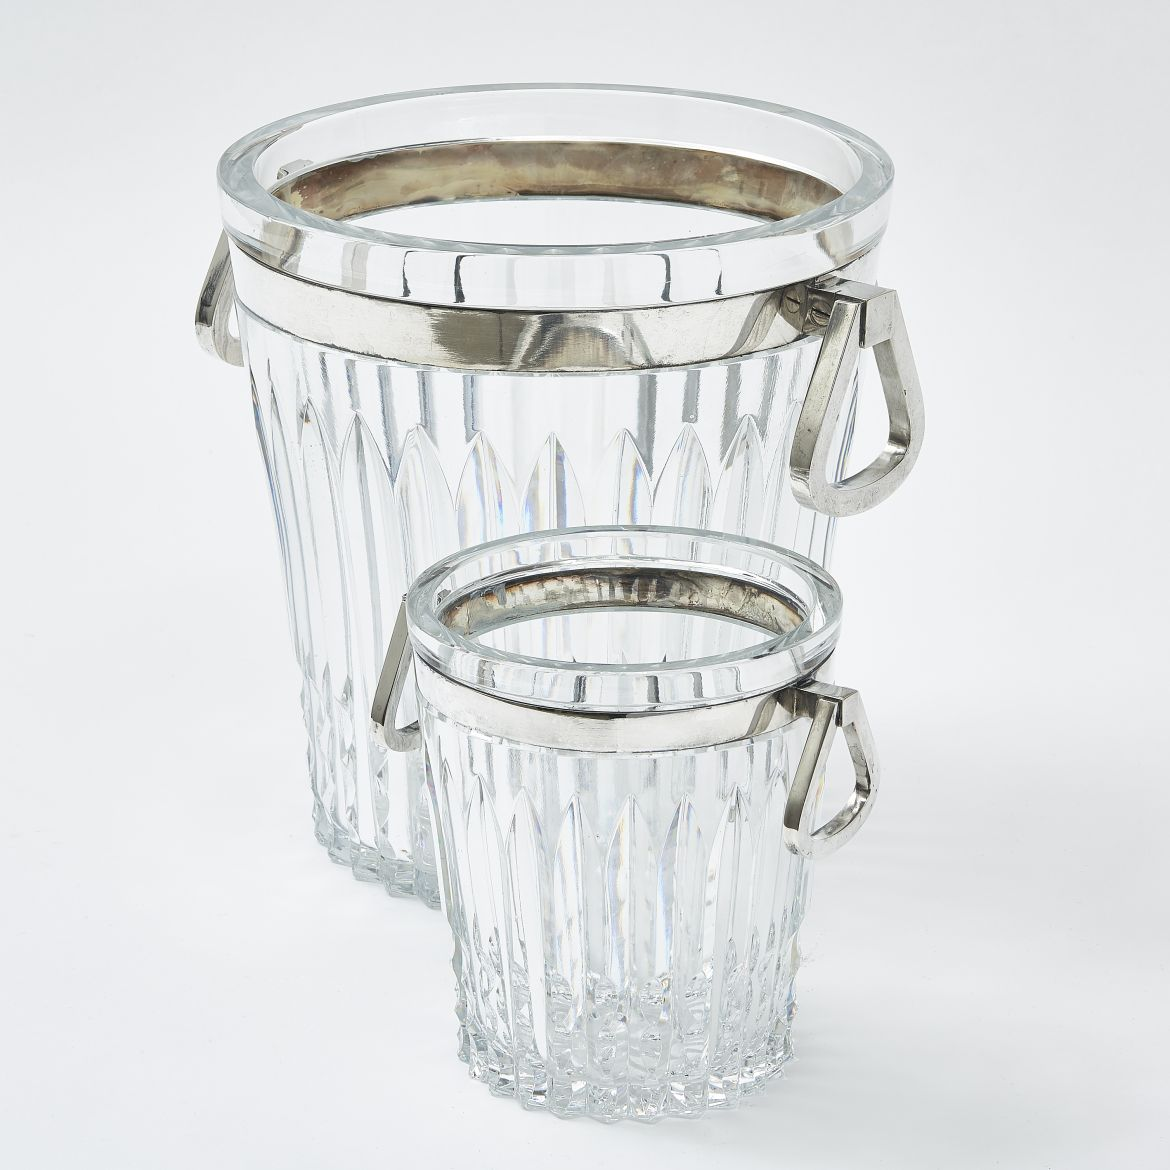 French Art Deco Style Cut Glass Bottle Cooler and Ice Bucket